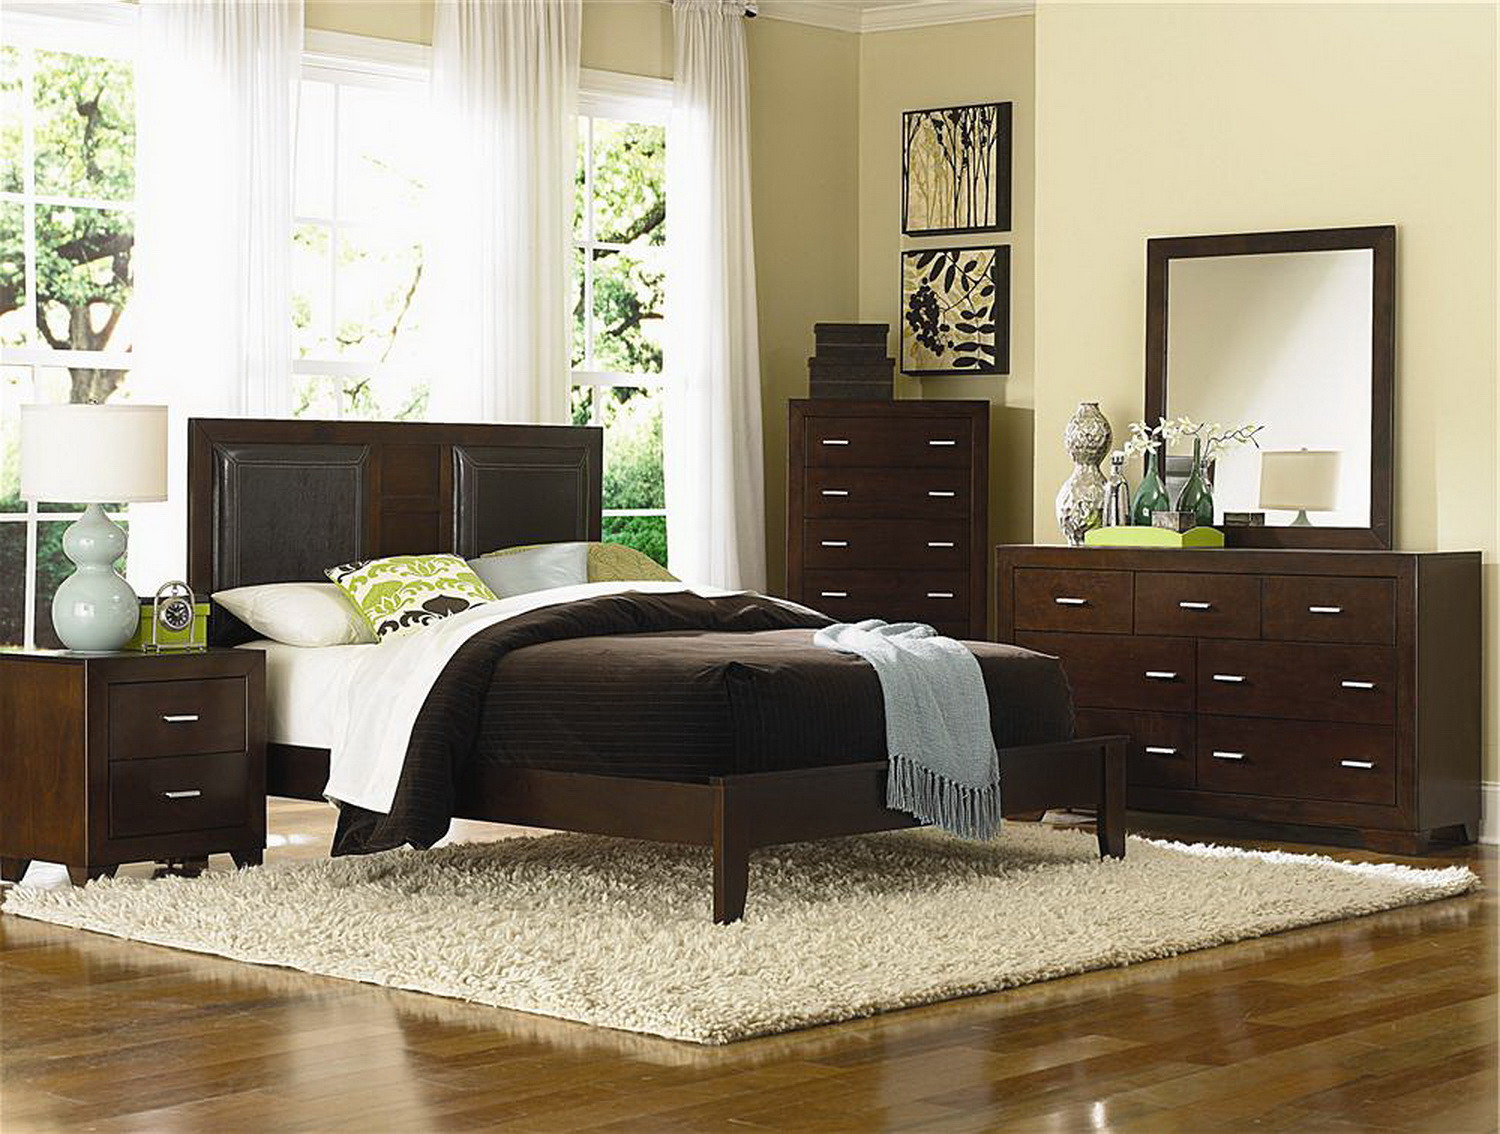 Best ideas about Full Size Bedroom Set . Save or Pin Bedroom Furniture Full Size Bed Now.